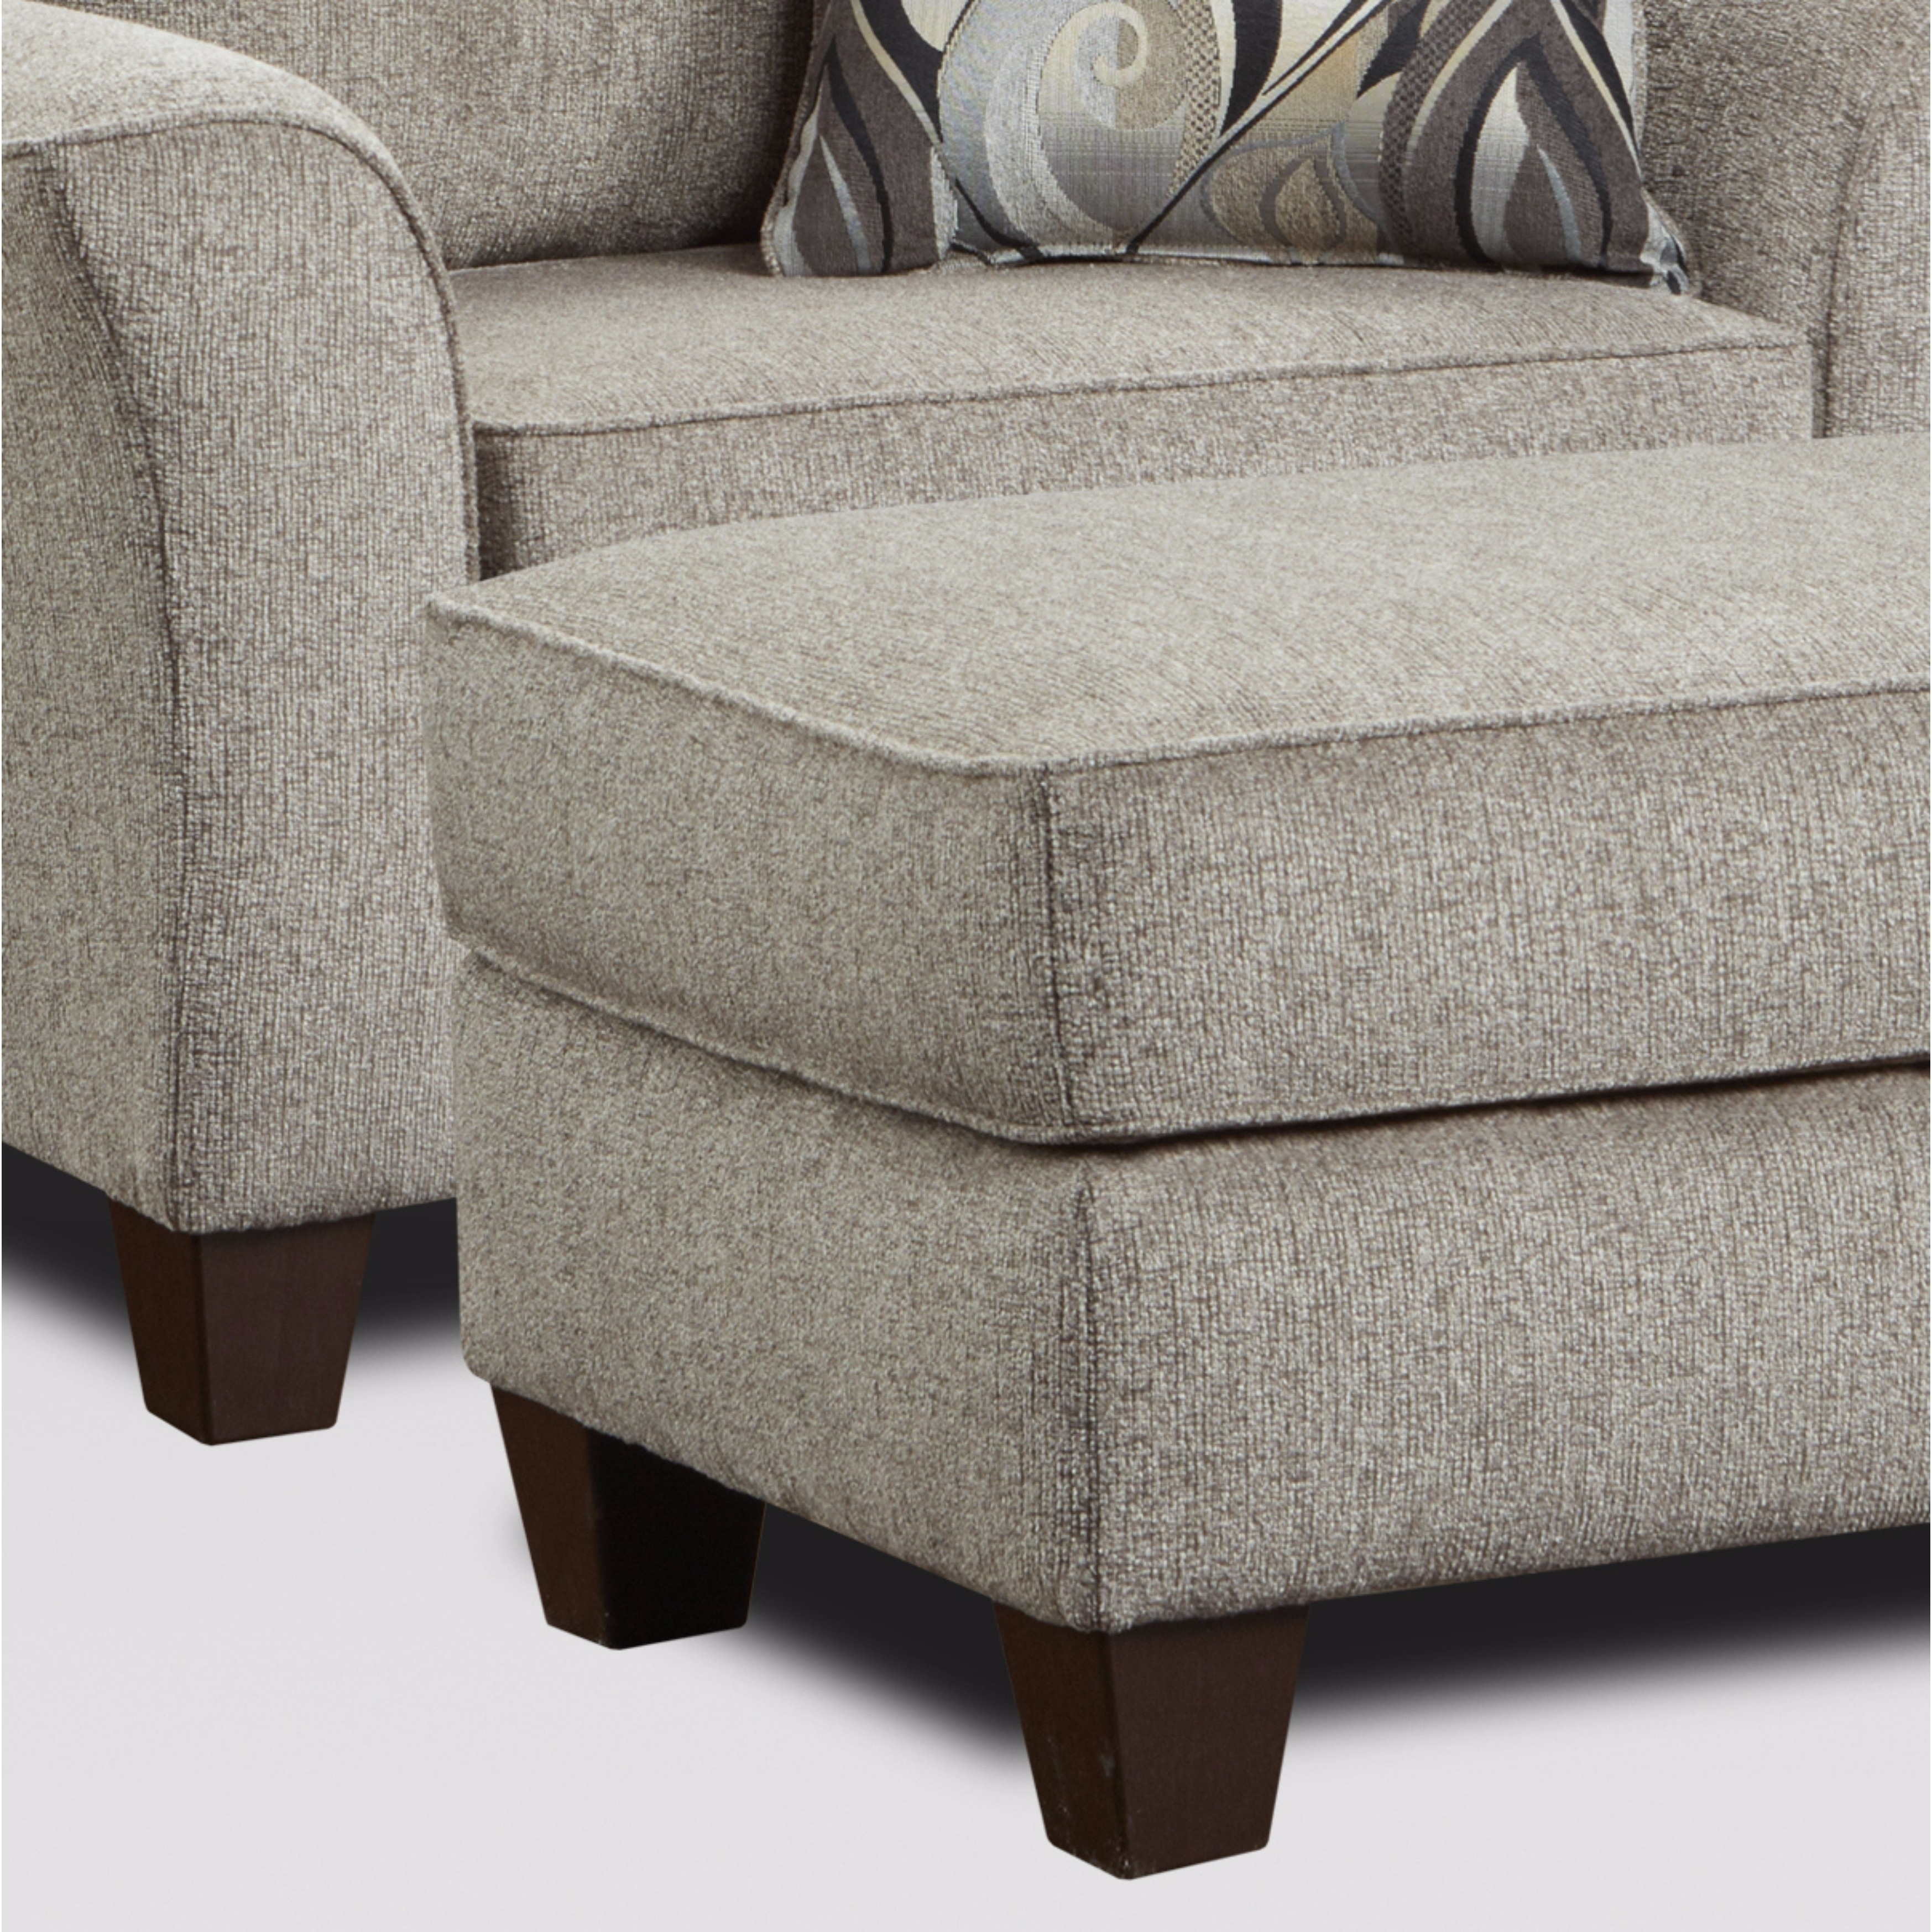 with and garden chairs dalton free ottoman chair overstock product home ottomans today shipping